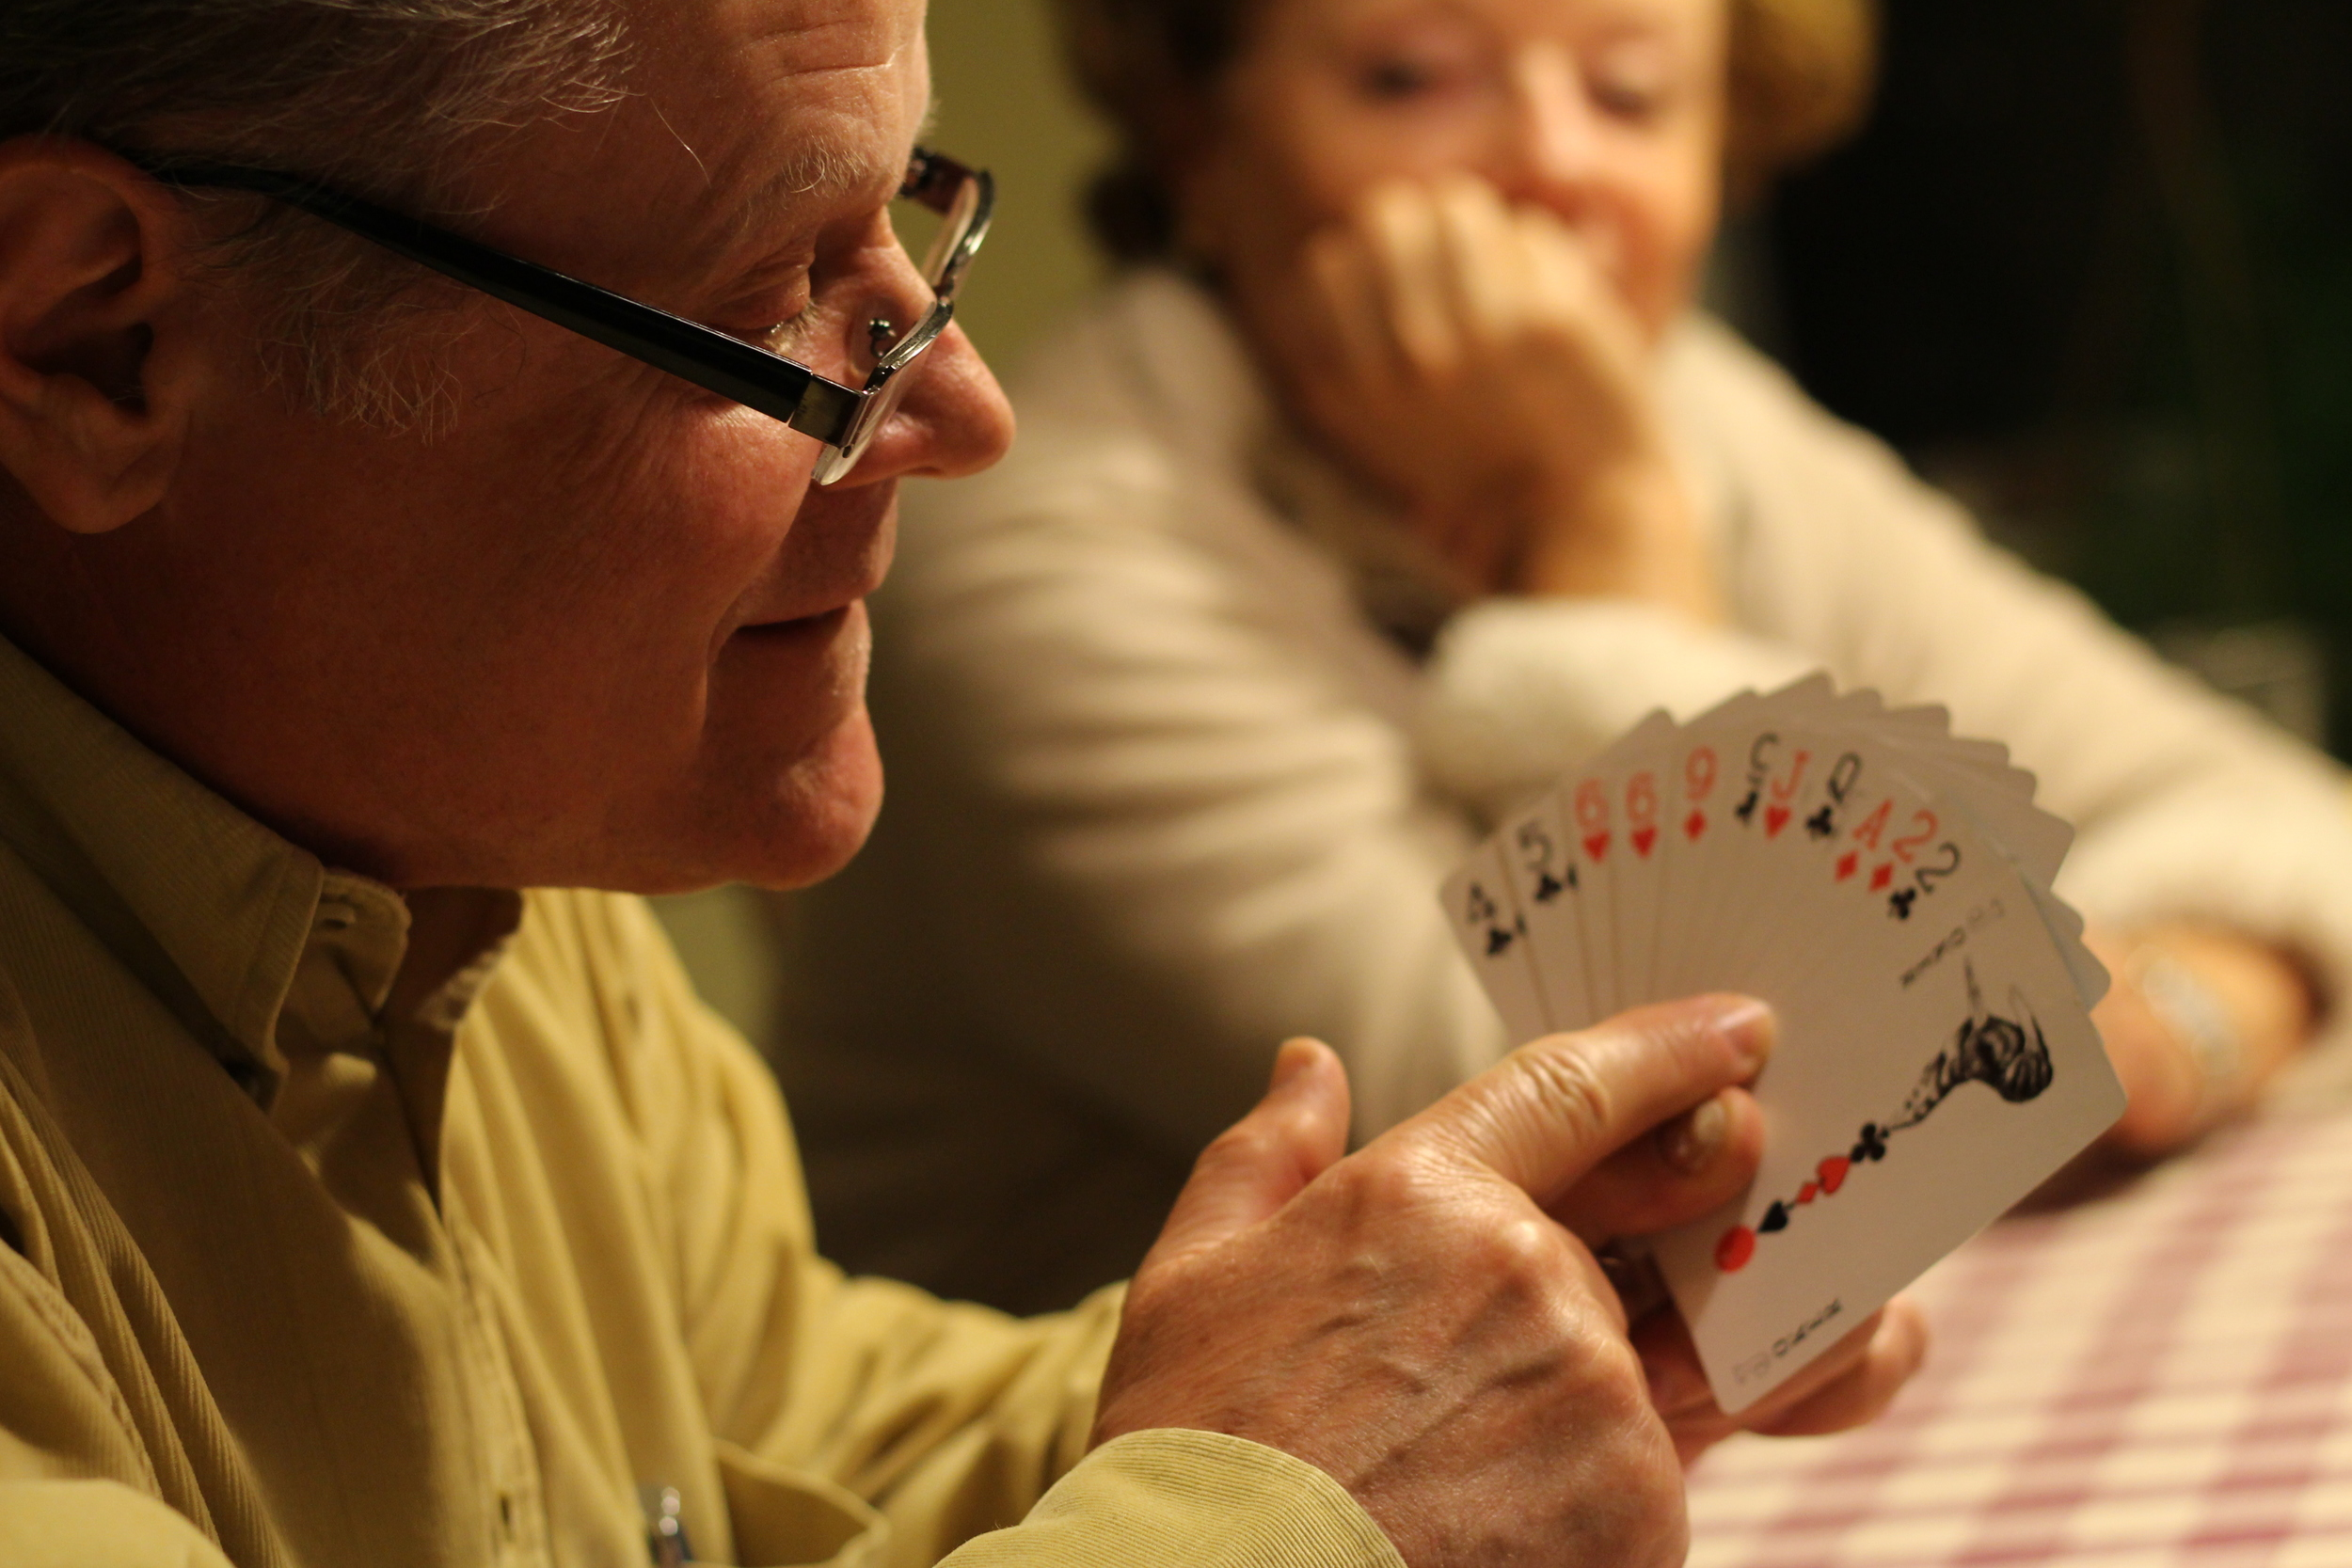 Slovak stories over card-playing. Slovak family members reunite in New Jersey, sharing stories about living under communism.